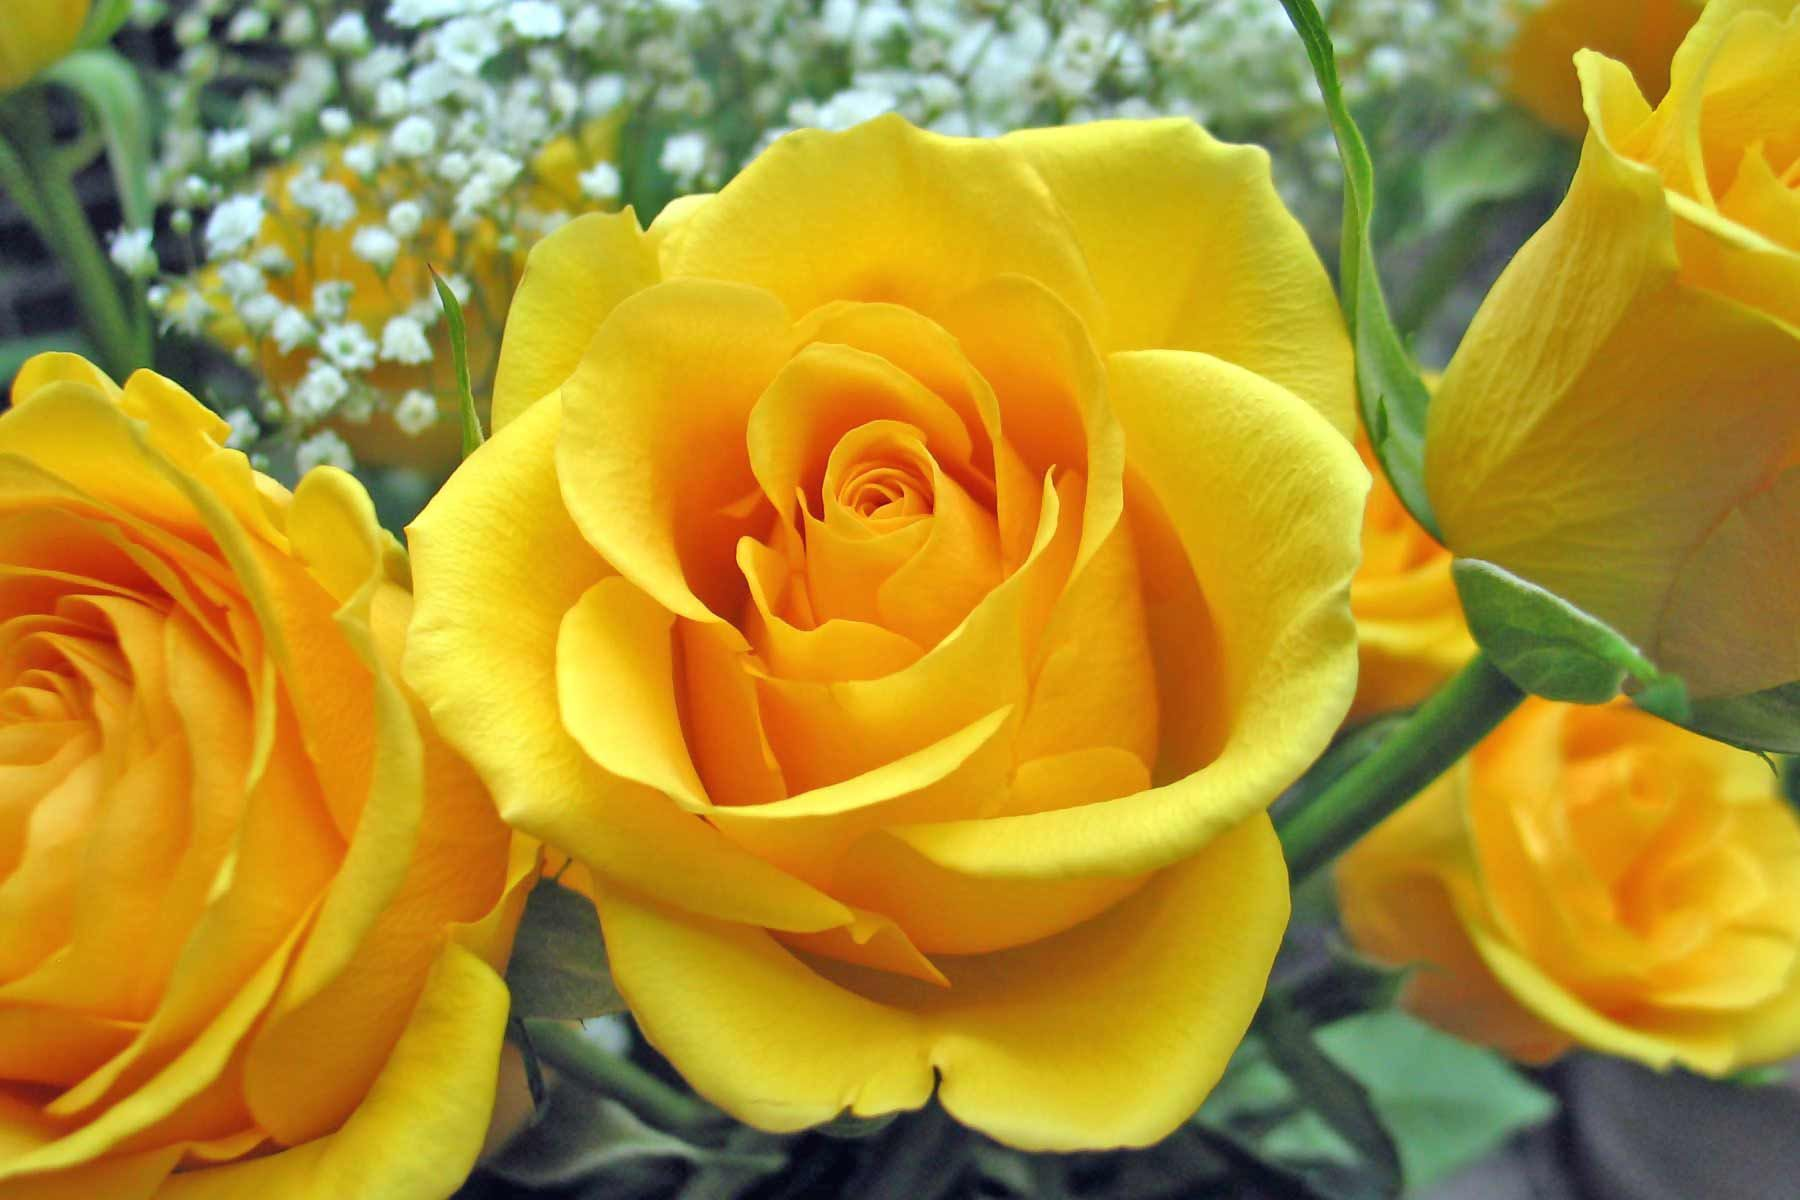 Yellow roses friendship flowers a few of my favourite things yellow roses were my mothers favorite flower thought i would share these with you brother since i see yellow rose is your favorite flower too mightylinksfo